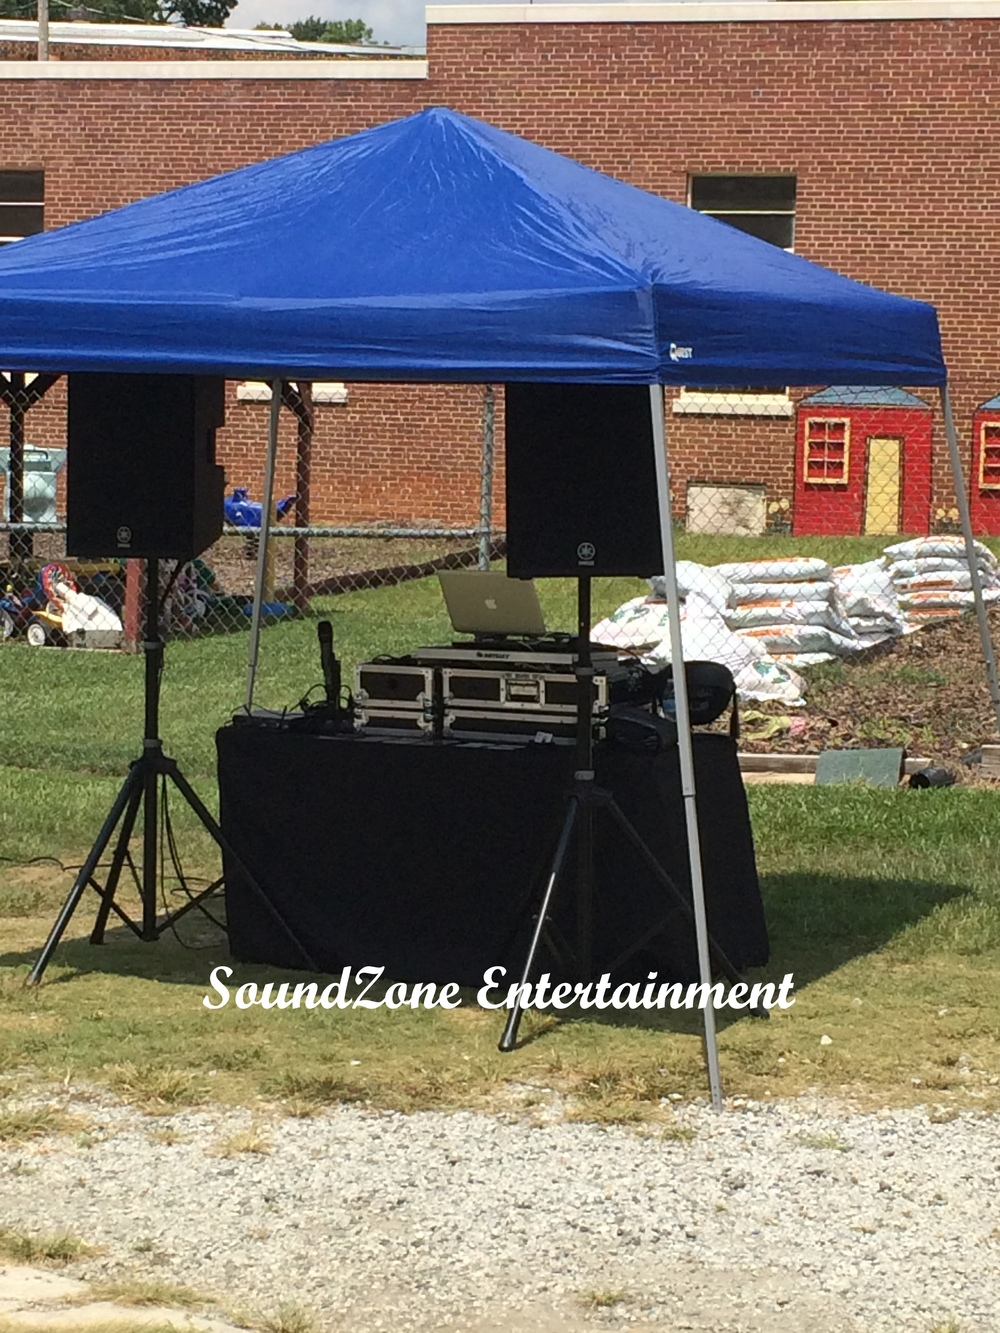 SoundZone Entertainment - Birthday Party at School